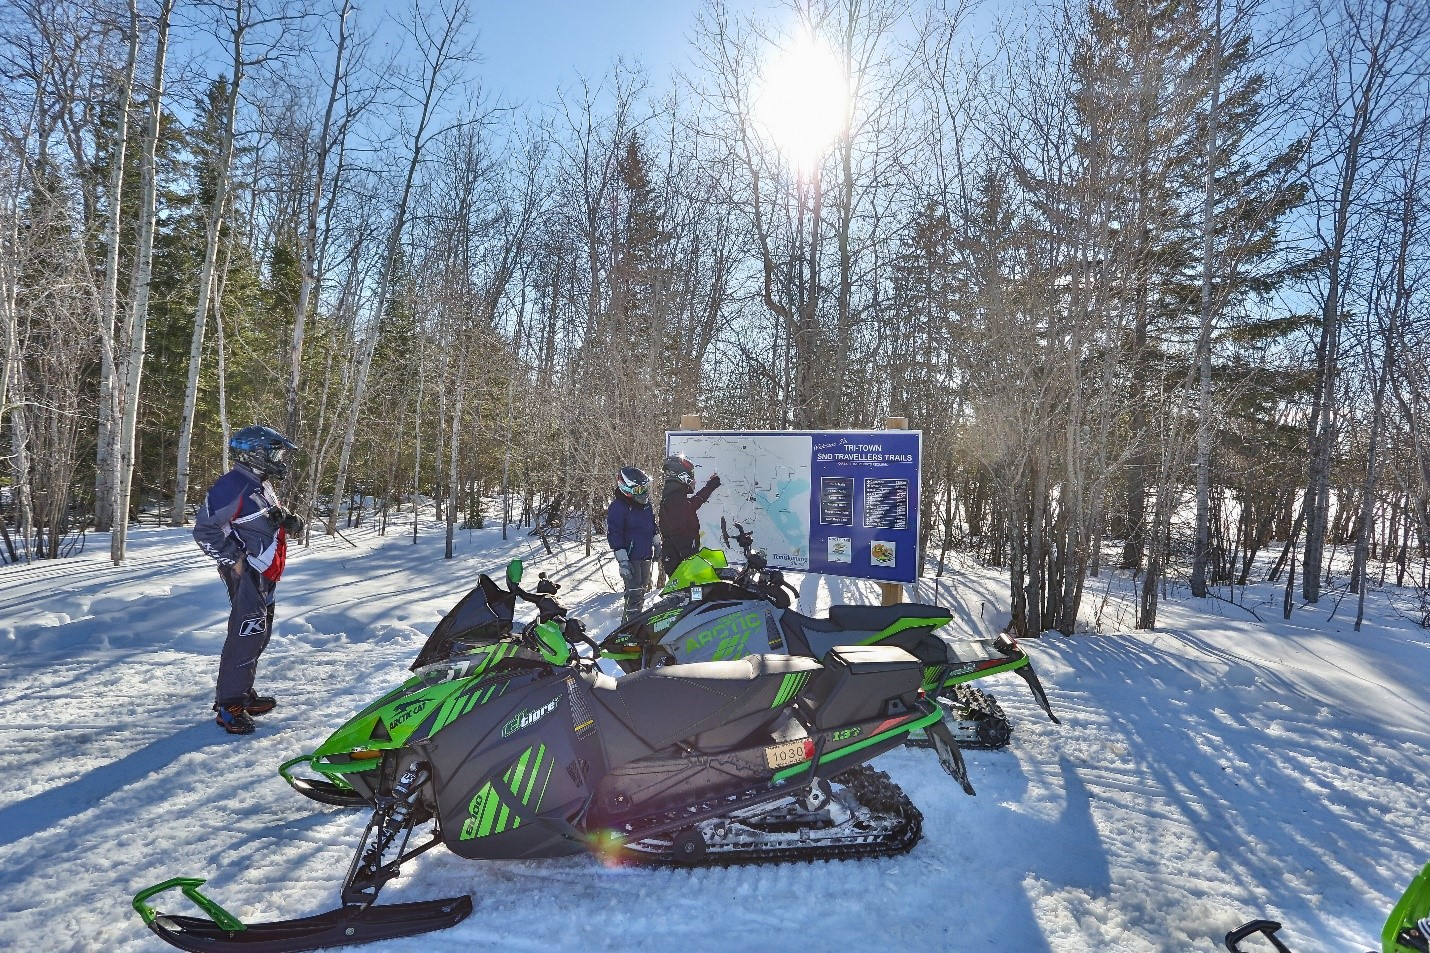 A group of three snowmobilers looking at an outdoor trail map on a sunny day